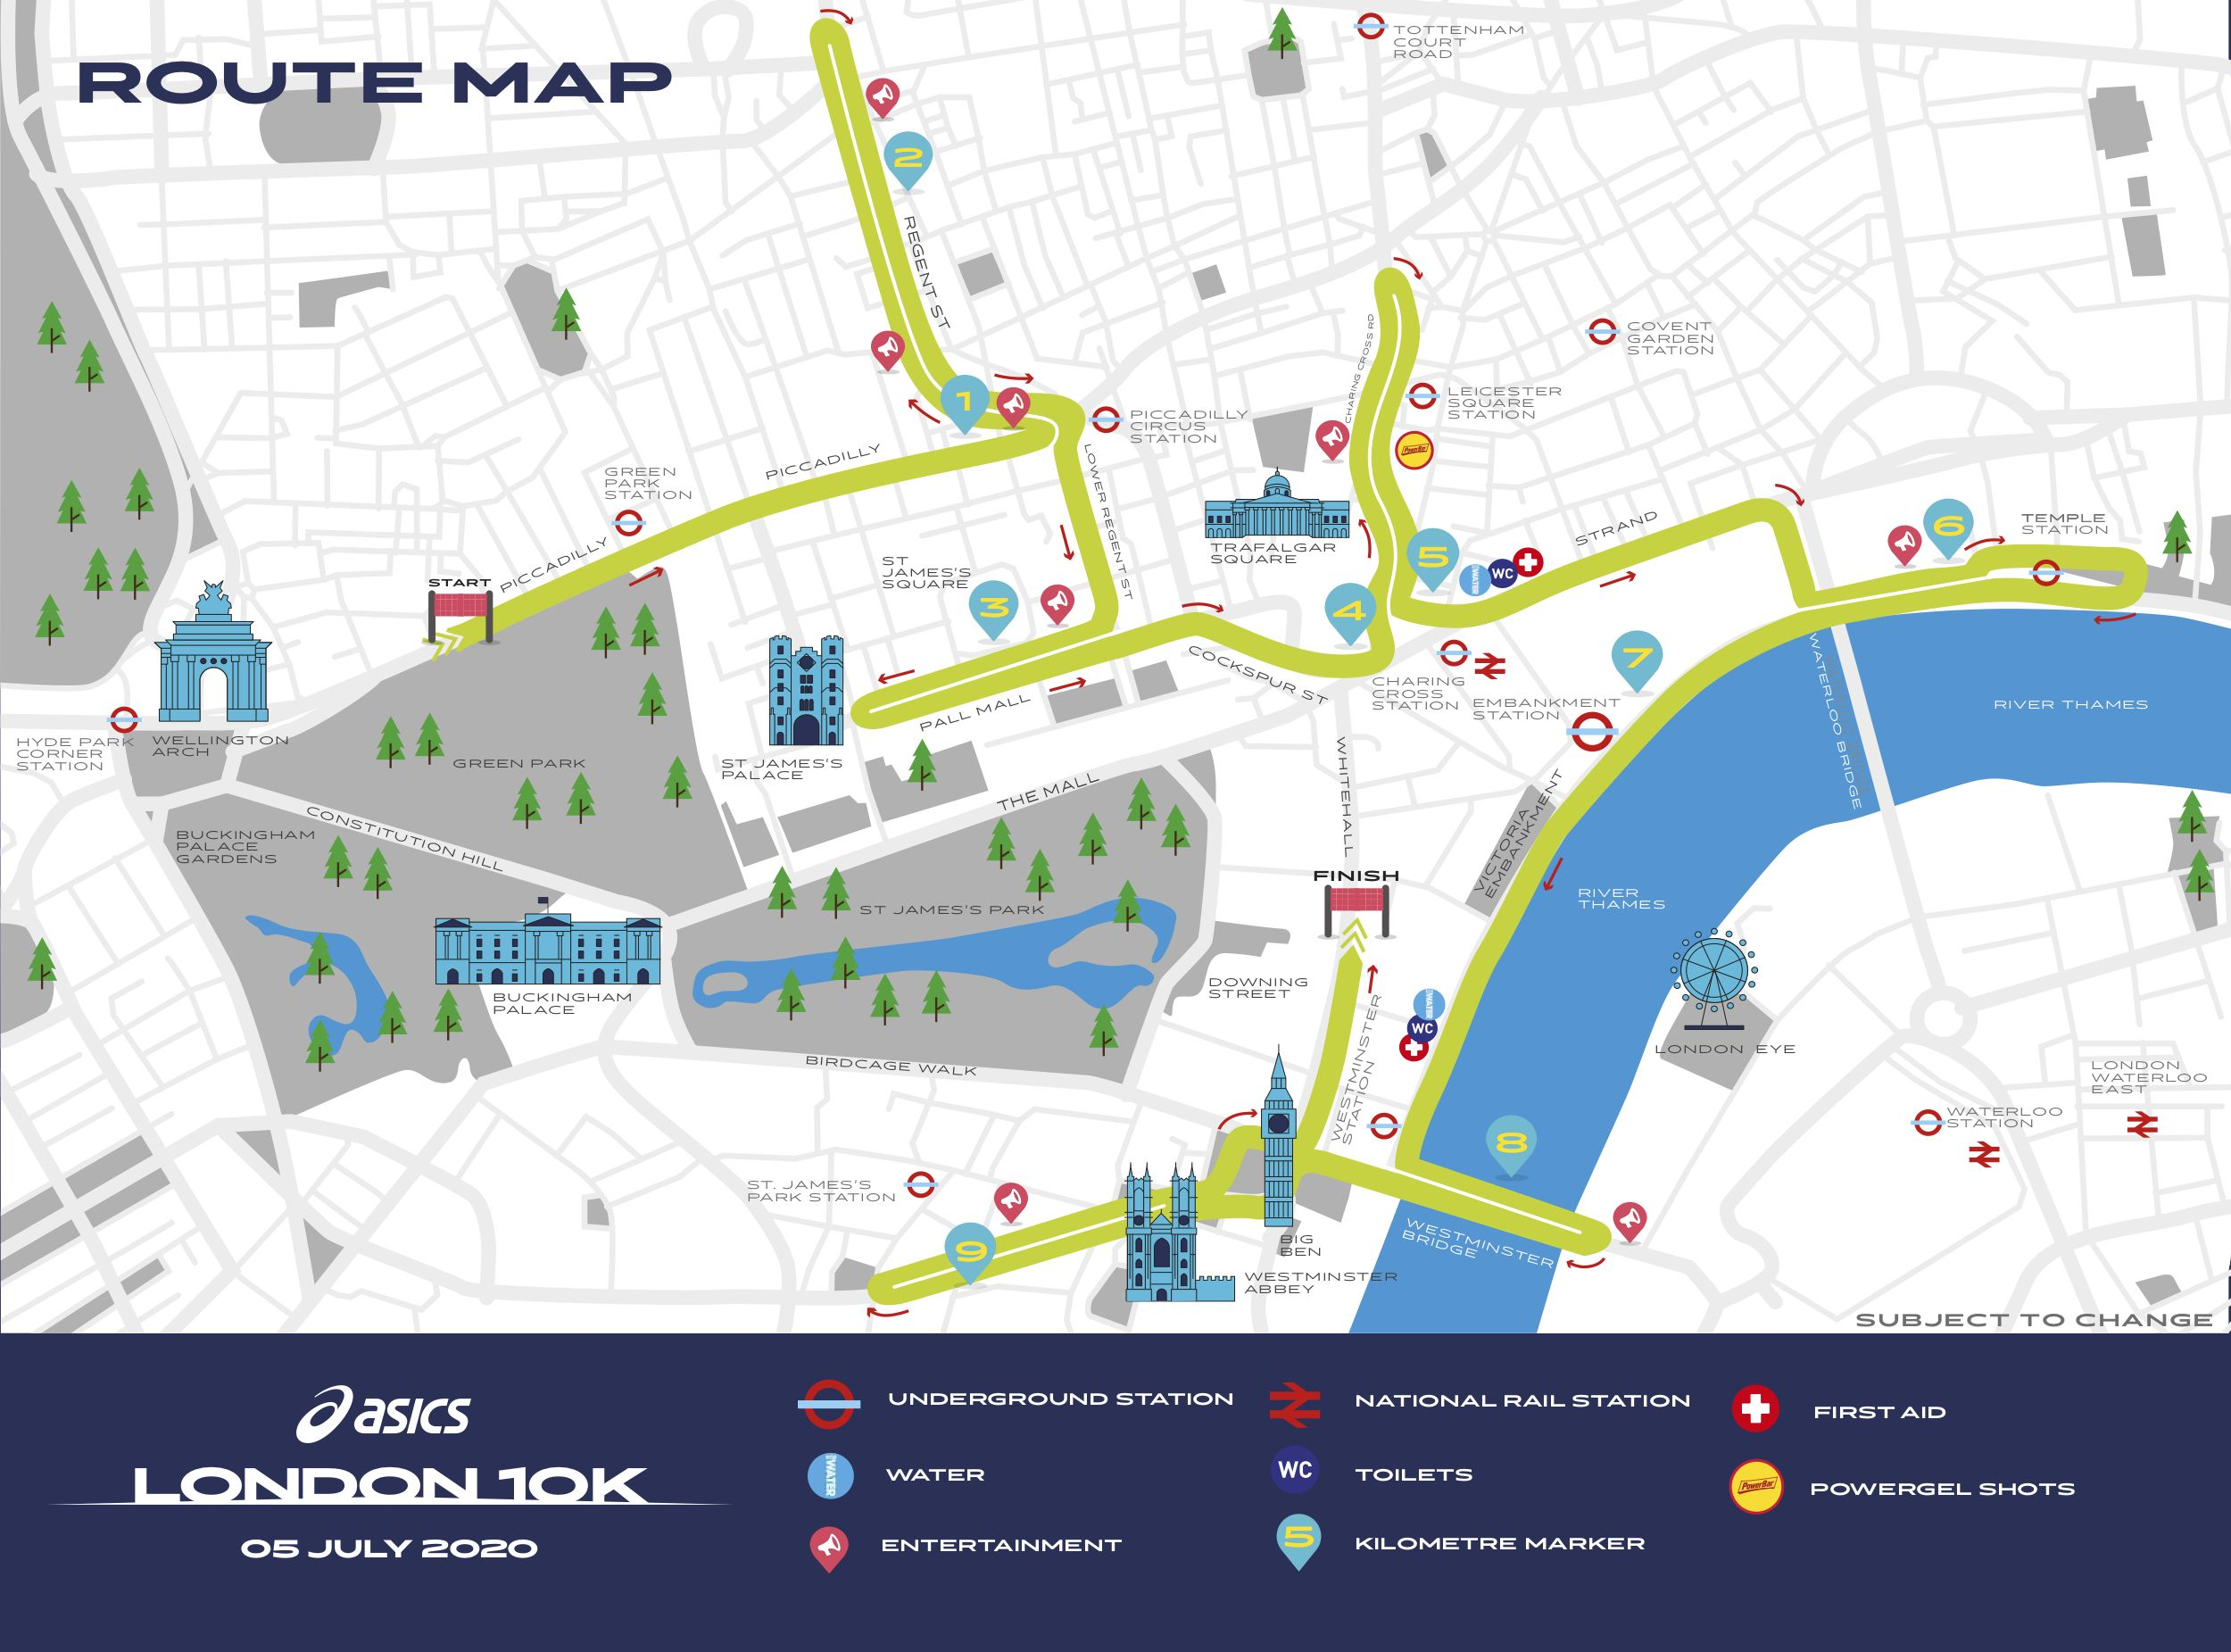 How to sign up for the 2021 London 10K